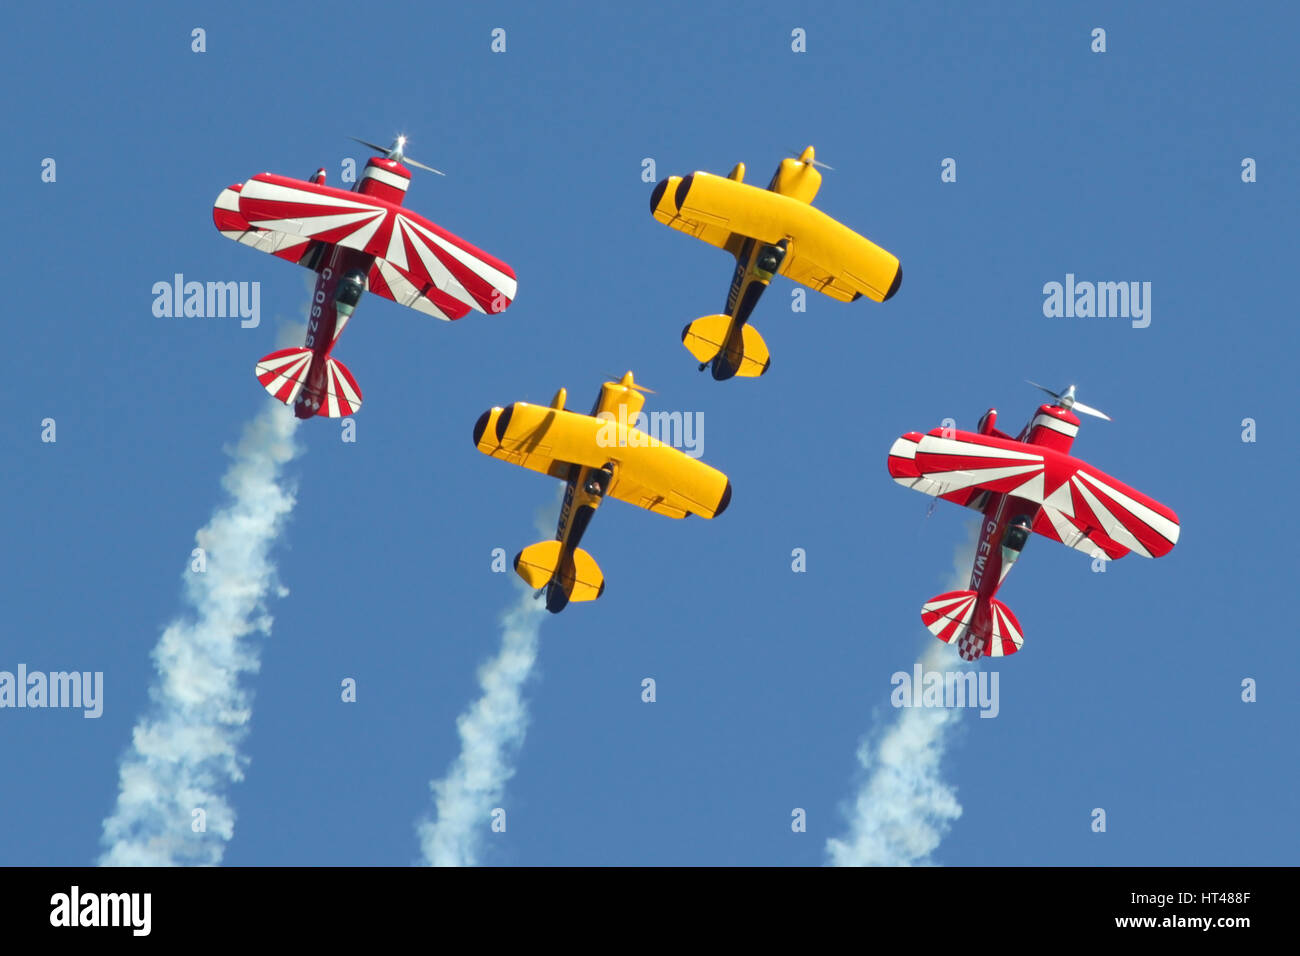 Four Pitts Special aerobatic aircraft pulling up into a loop during a Duxford airshow. - Stock Image